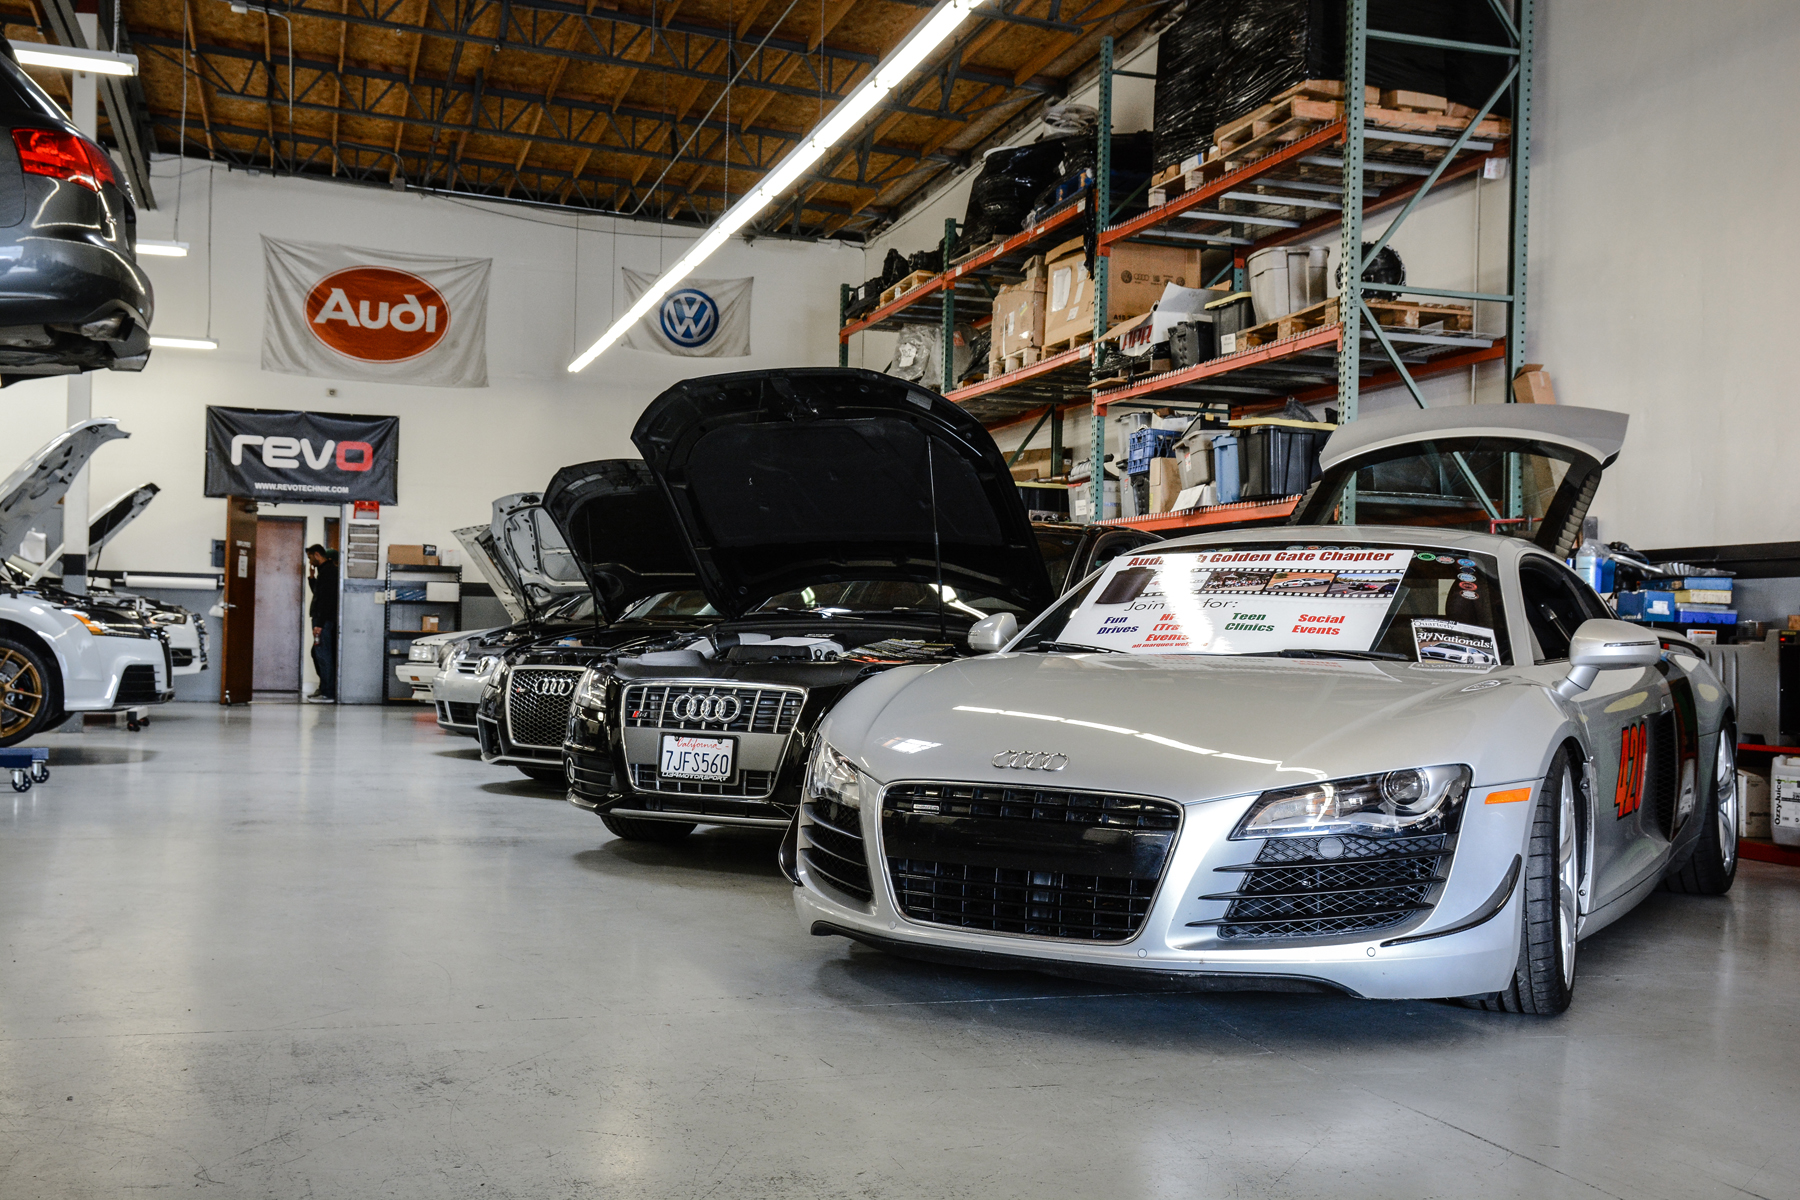 Audi R8 V8 from Audi Club Golden Gate